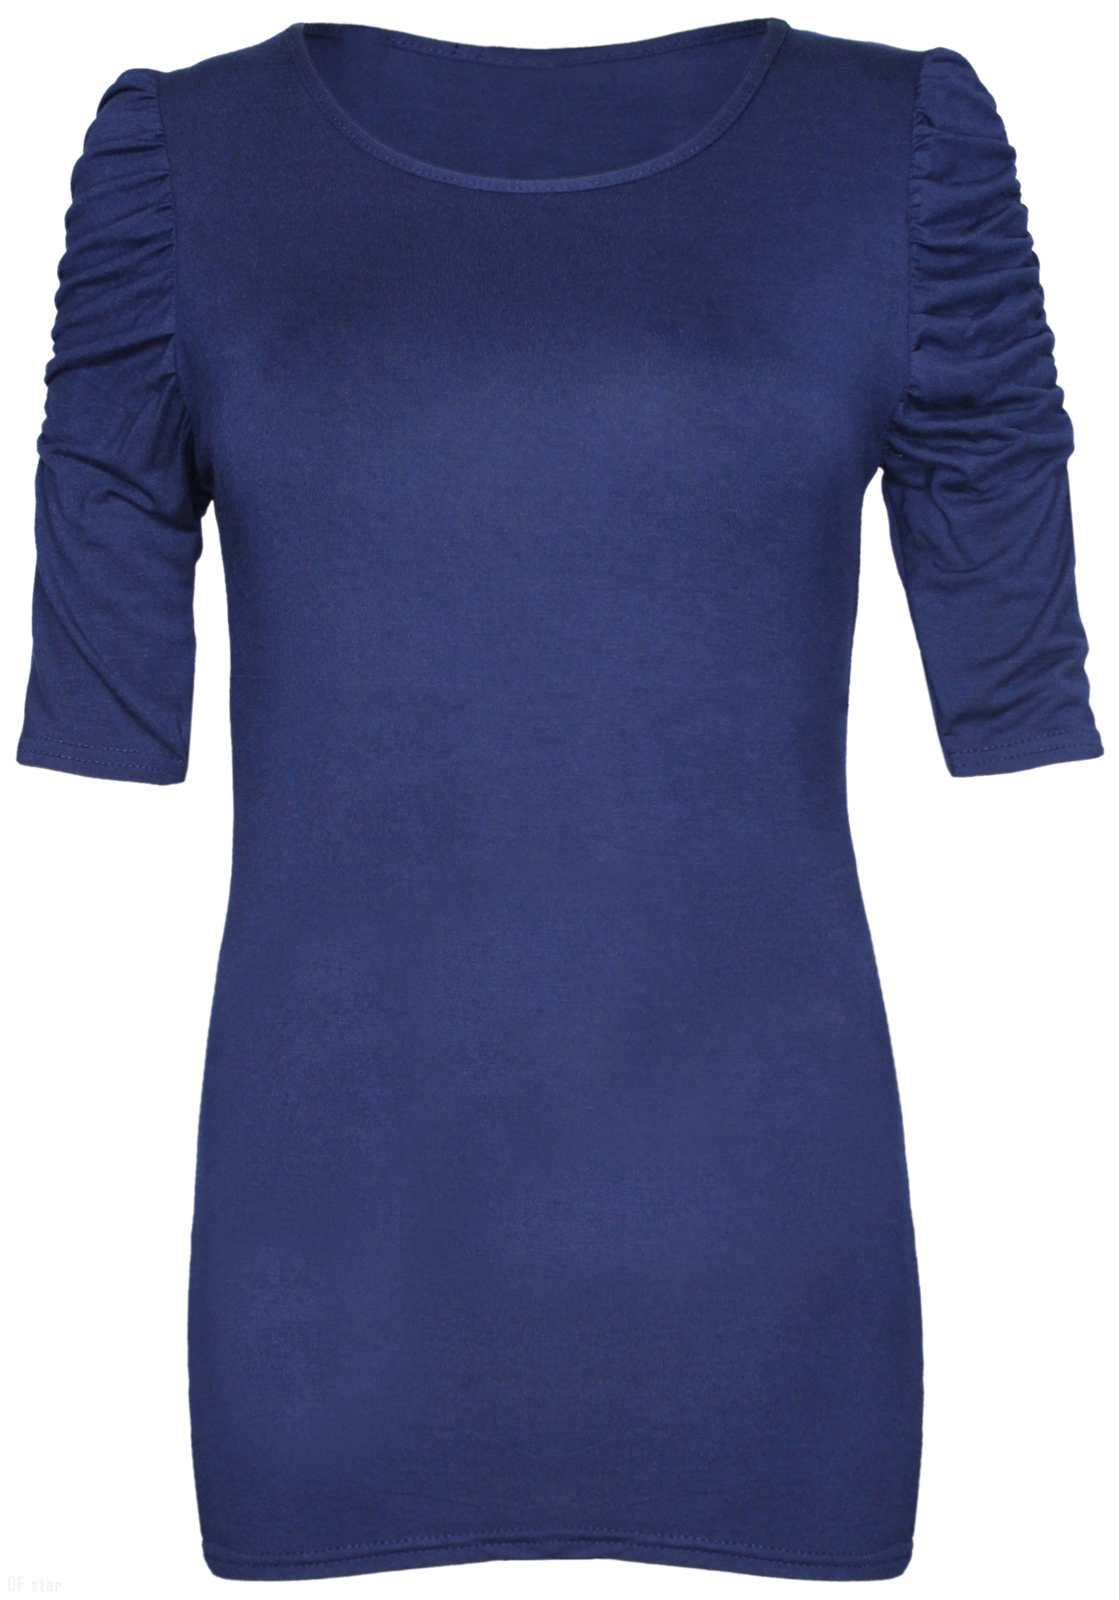 NEW-LADIES-RUCHED-SHORT-SLEEVE-WOMENS-LONG-STRETCH-TOP 縮圖 24